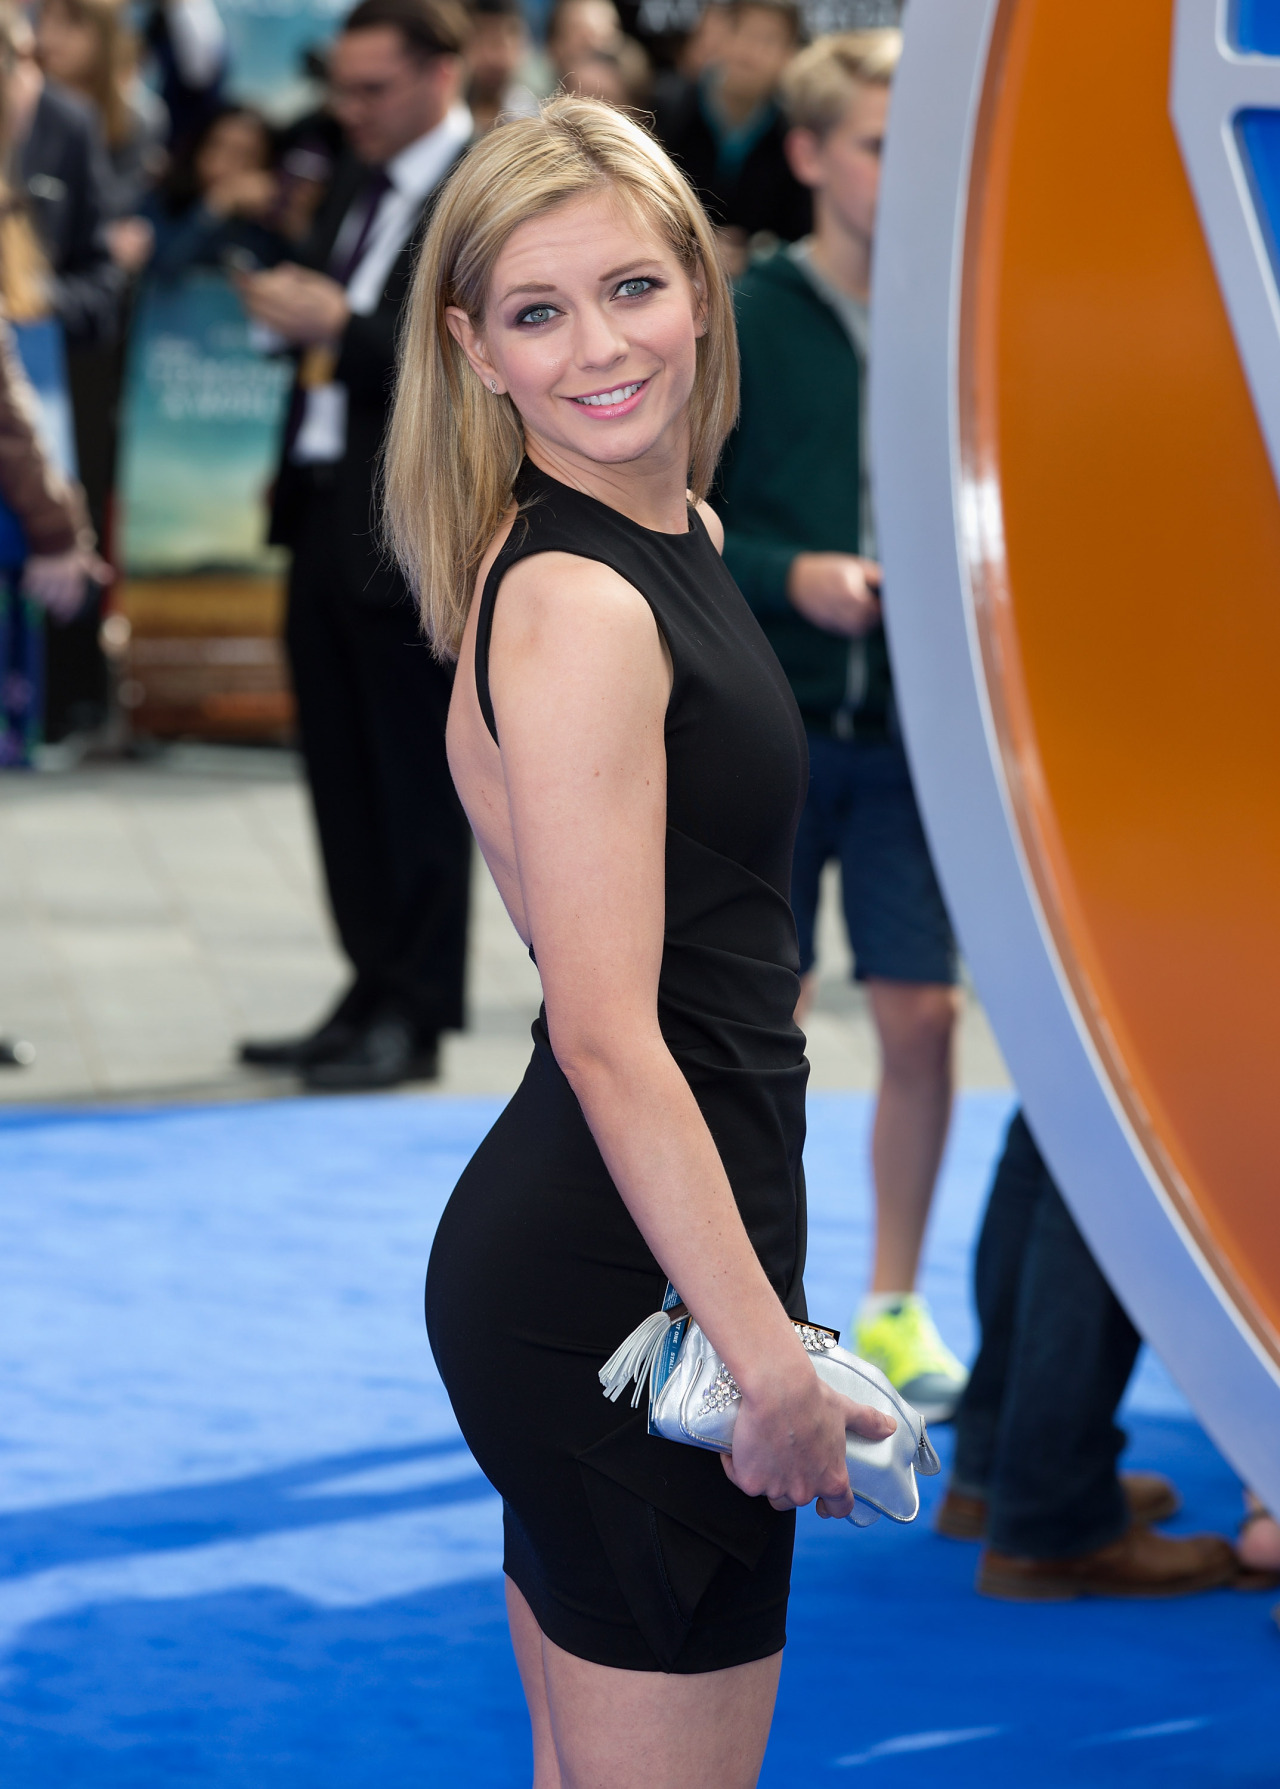 rachel-riley-in-tights